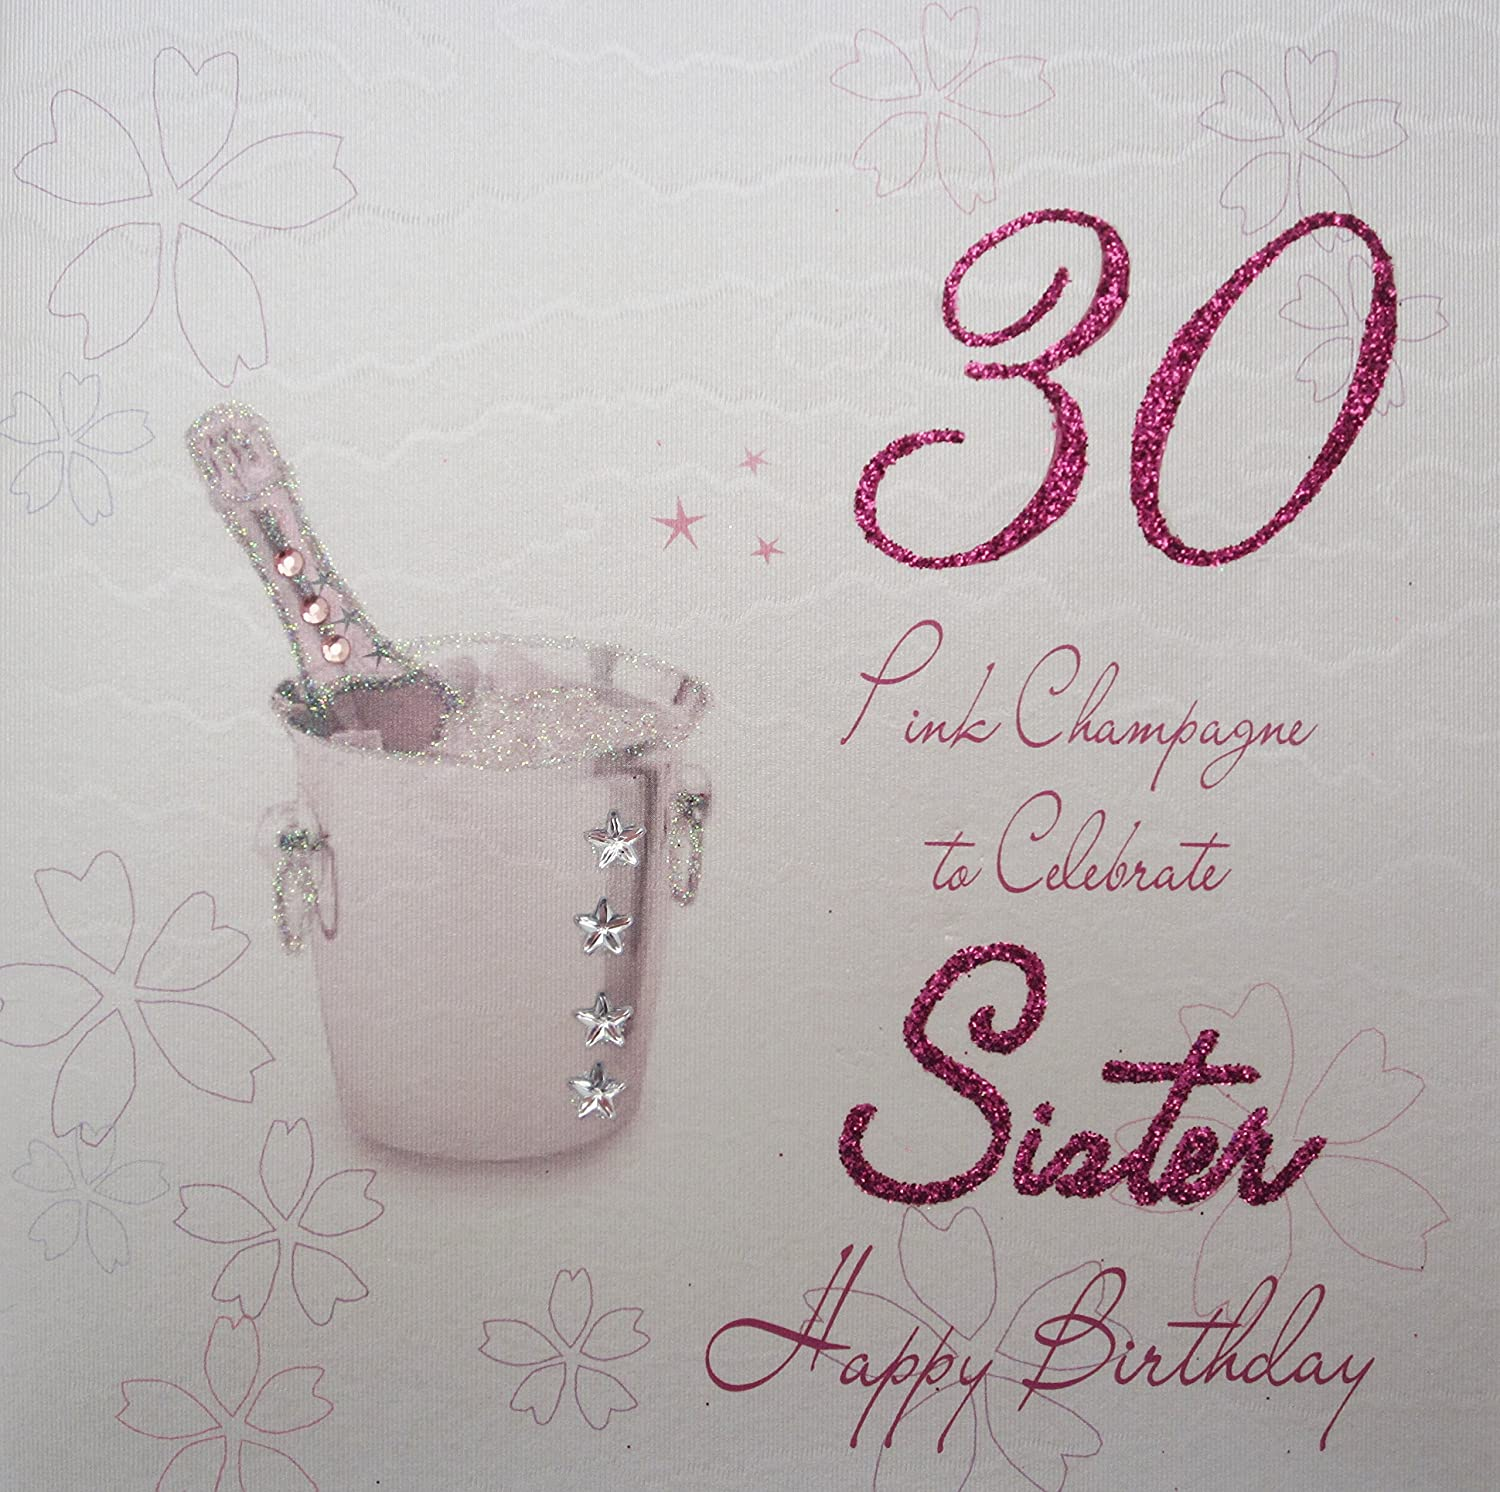 WHITE COTTON CARDS 30 Celebrate Sister Happy Handmade 30th Birthday Card Pink Champagne